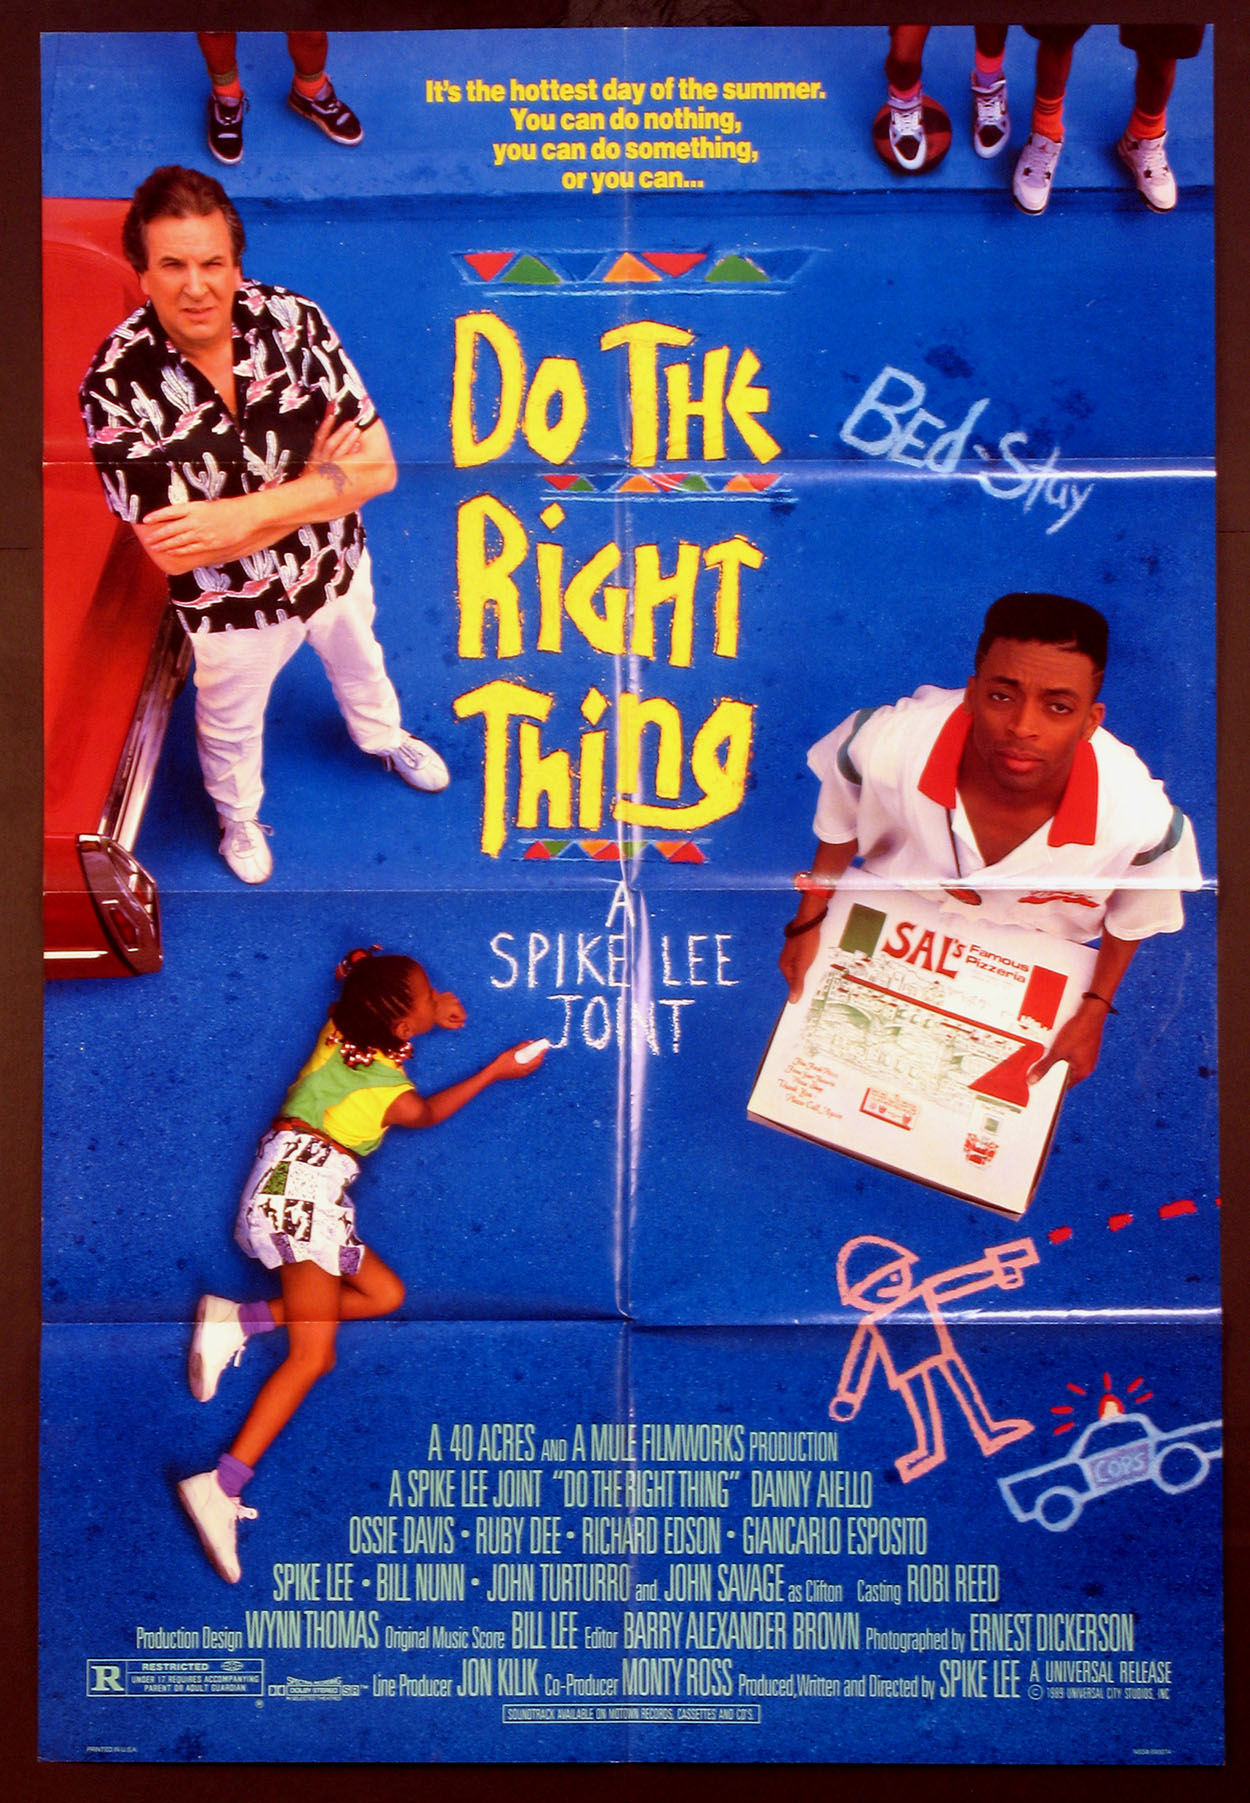 DO THE RIGHT THING @ FilmPosters.com